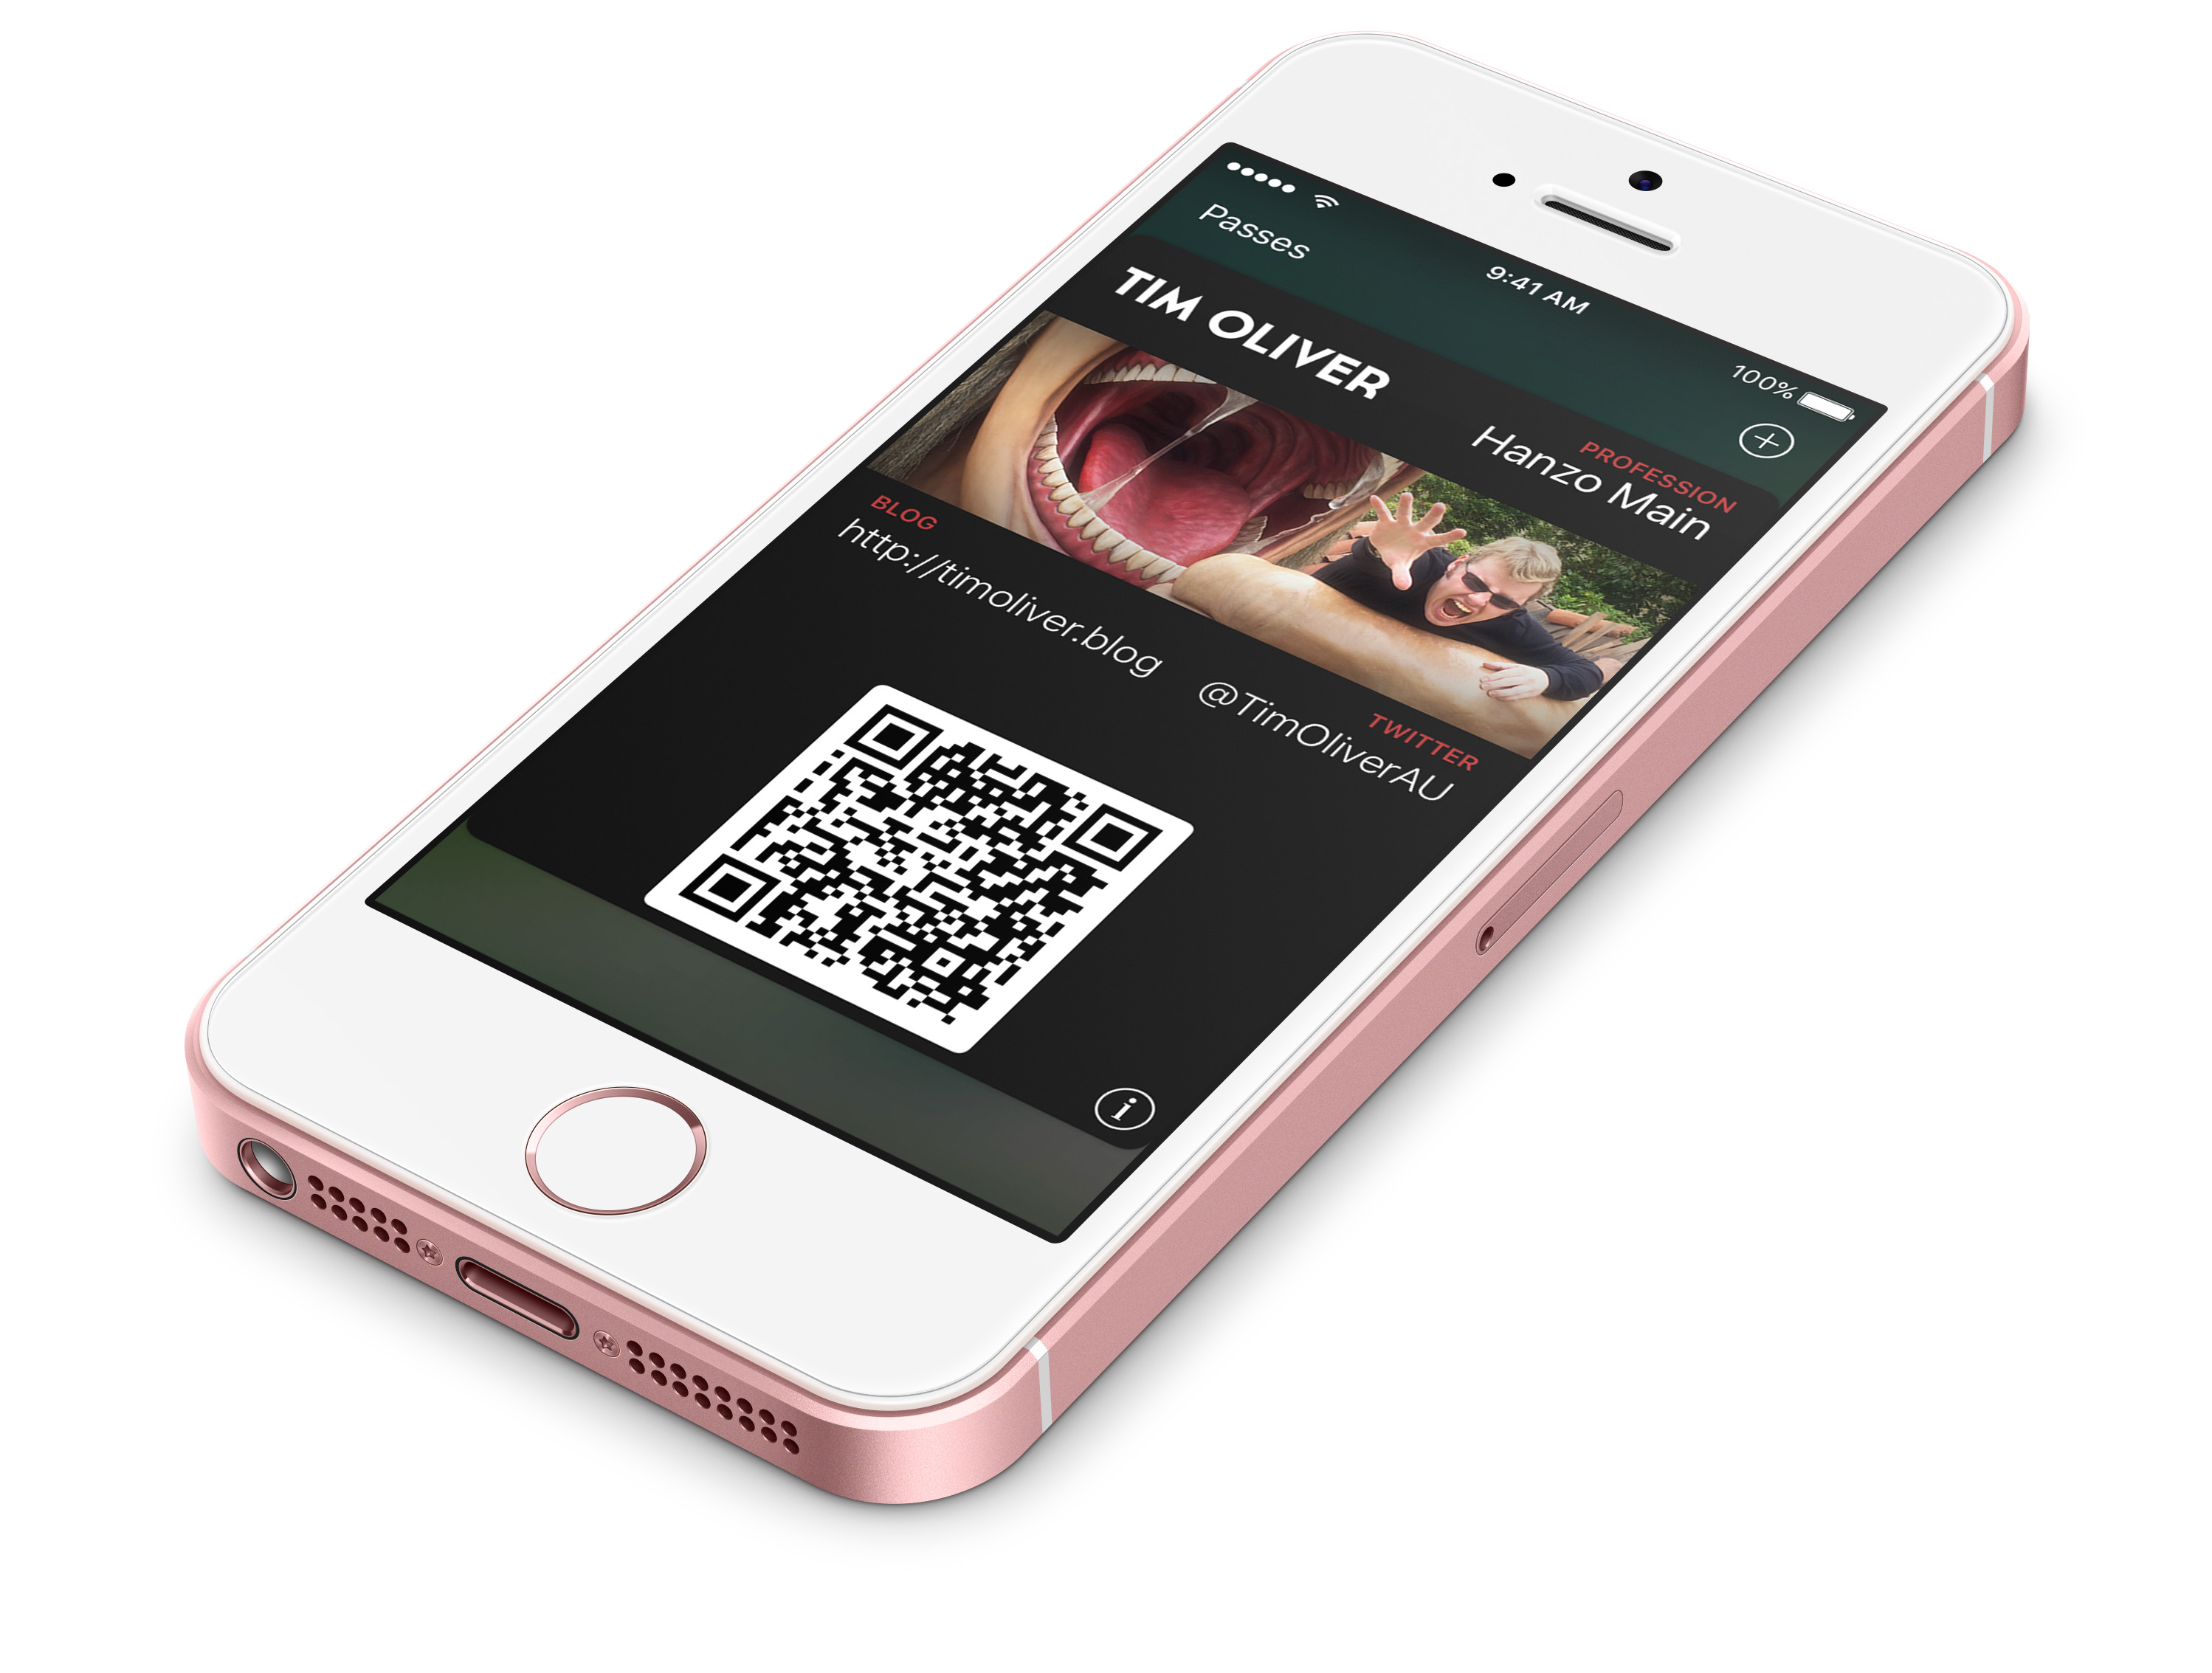 Github timoliverpasskit business card a template for ios wallet a template that can be used to generate passes for the ios wallet app that can be used like business cards reheart Images